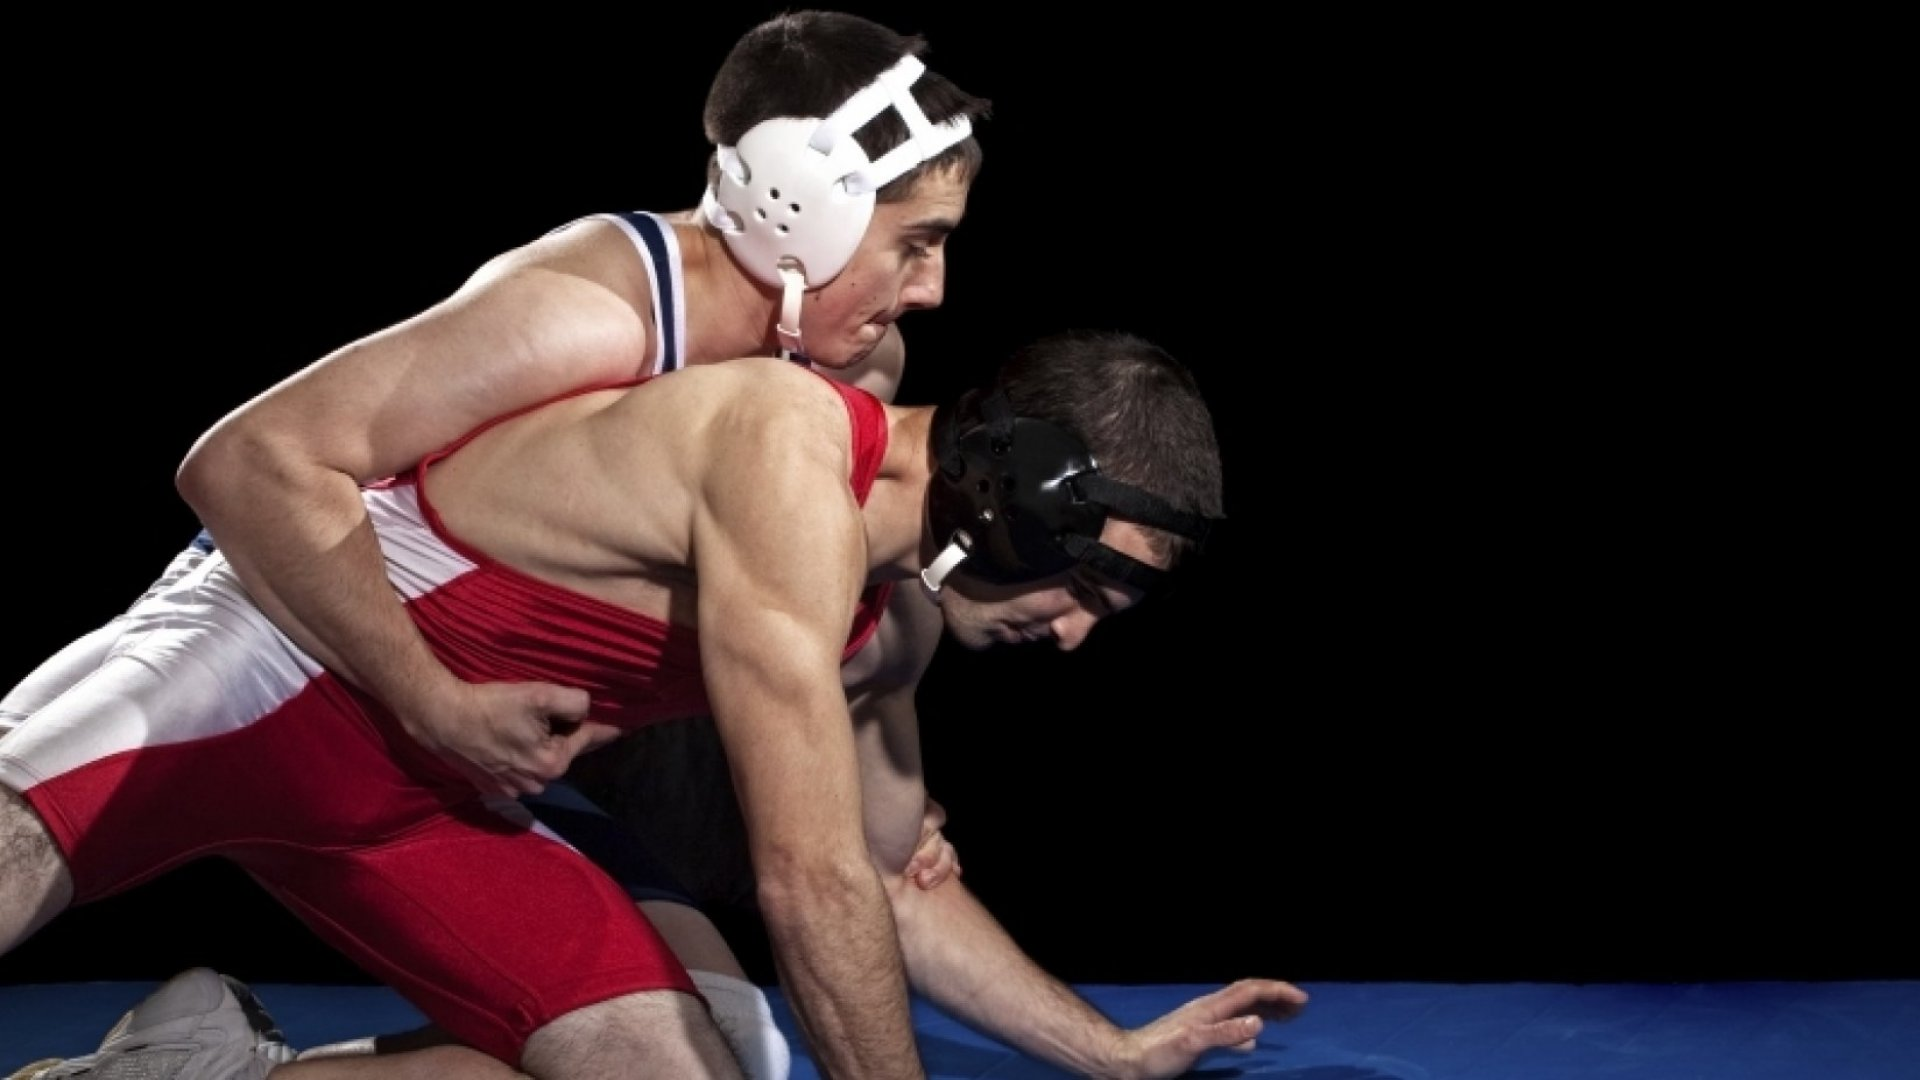 Why You Need to Hire More Wrestlers and Soccer Players